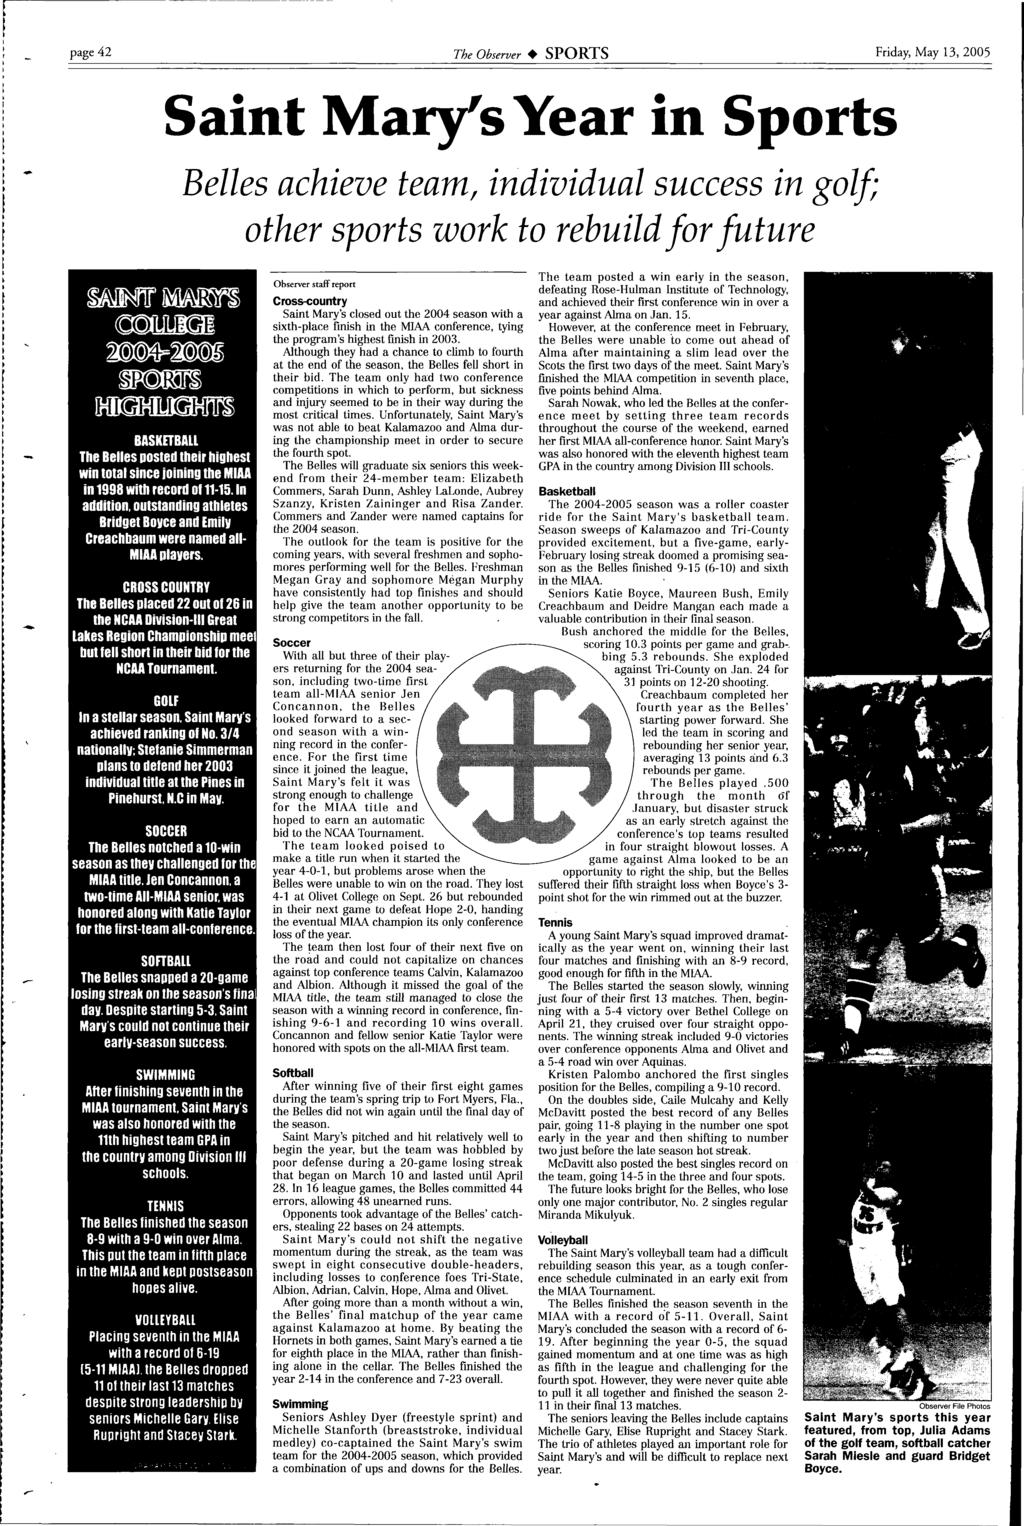 Rectors Leave Nd Transition At The Top See Story Page 16 Monk Nokha Rider Coffee Black Men Cokelat Tua 42 Observer Sports Friday May 13 2005 Saint Marys Year